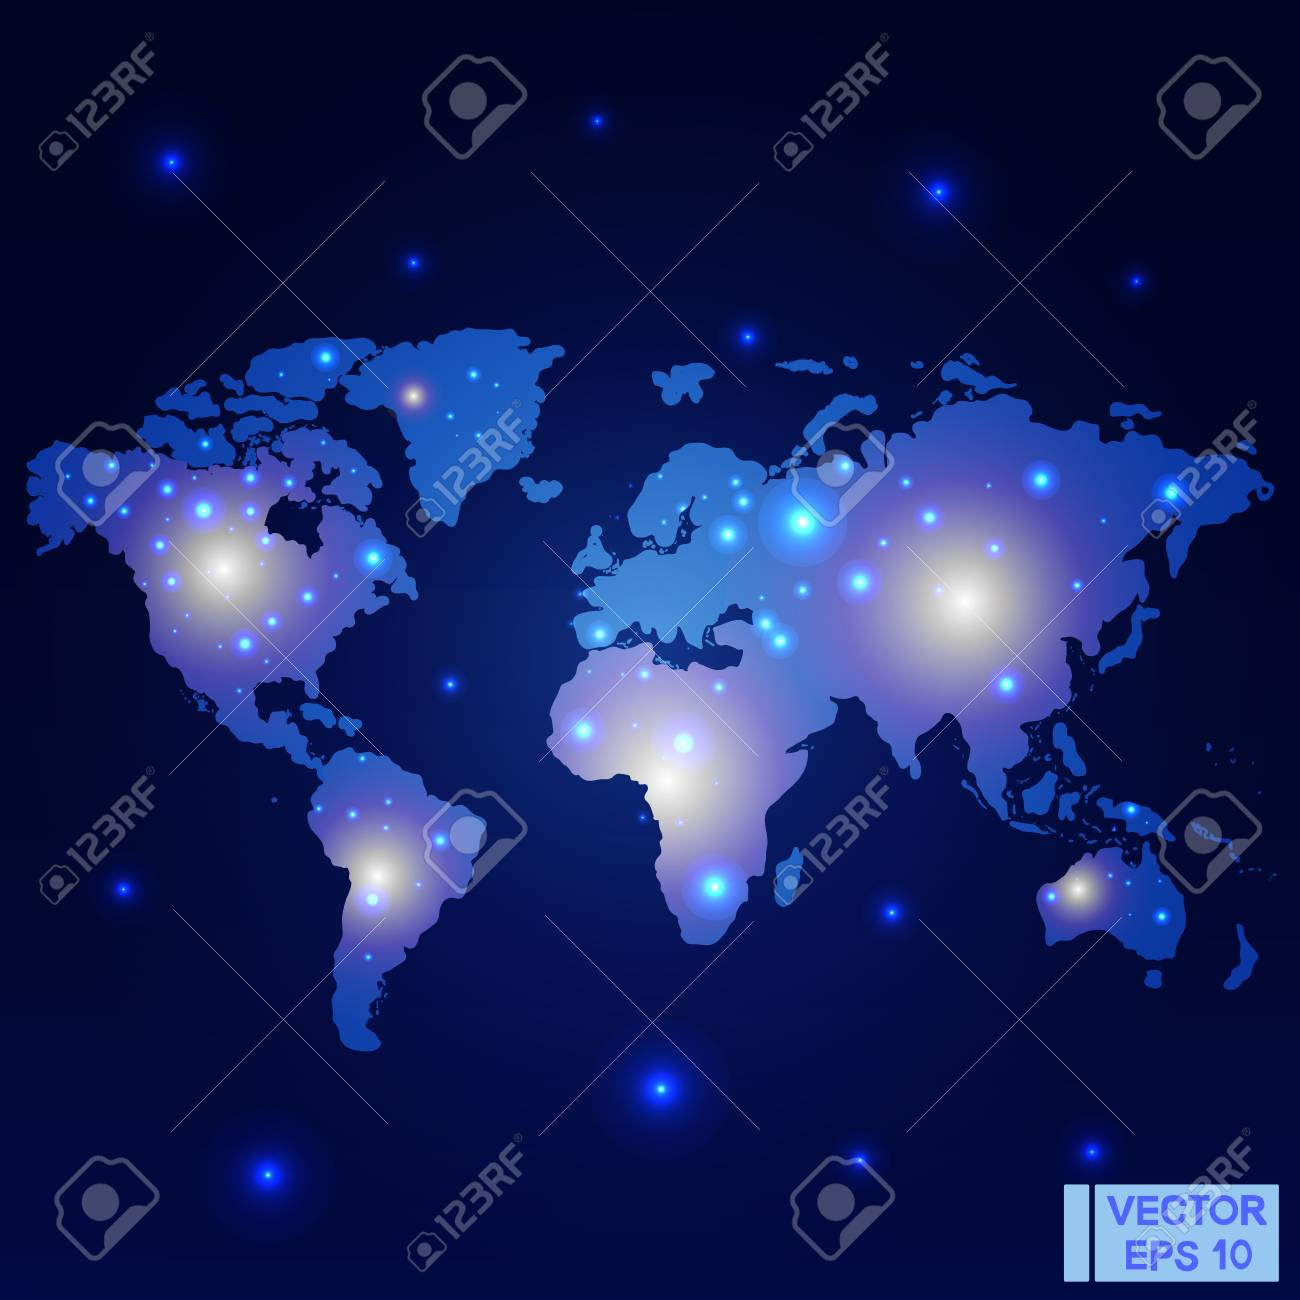 Vector image world map night lights on the map glowing marks world map night lights on the map glowing marks on a dark blue background gumiabroncs Image collections